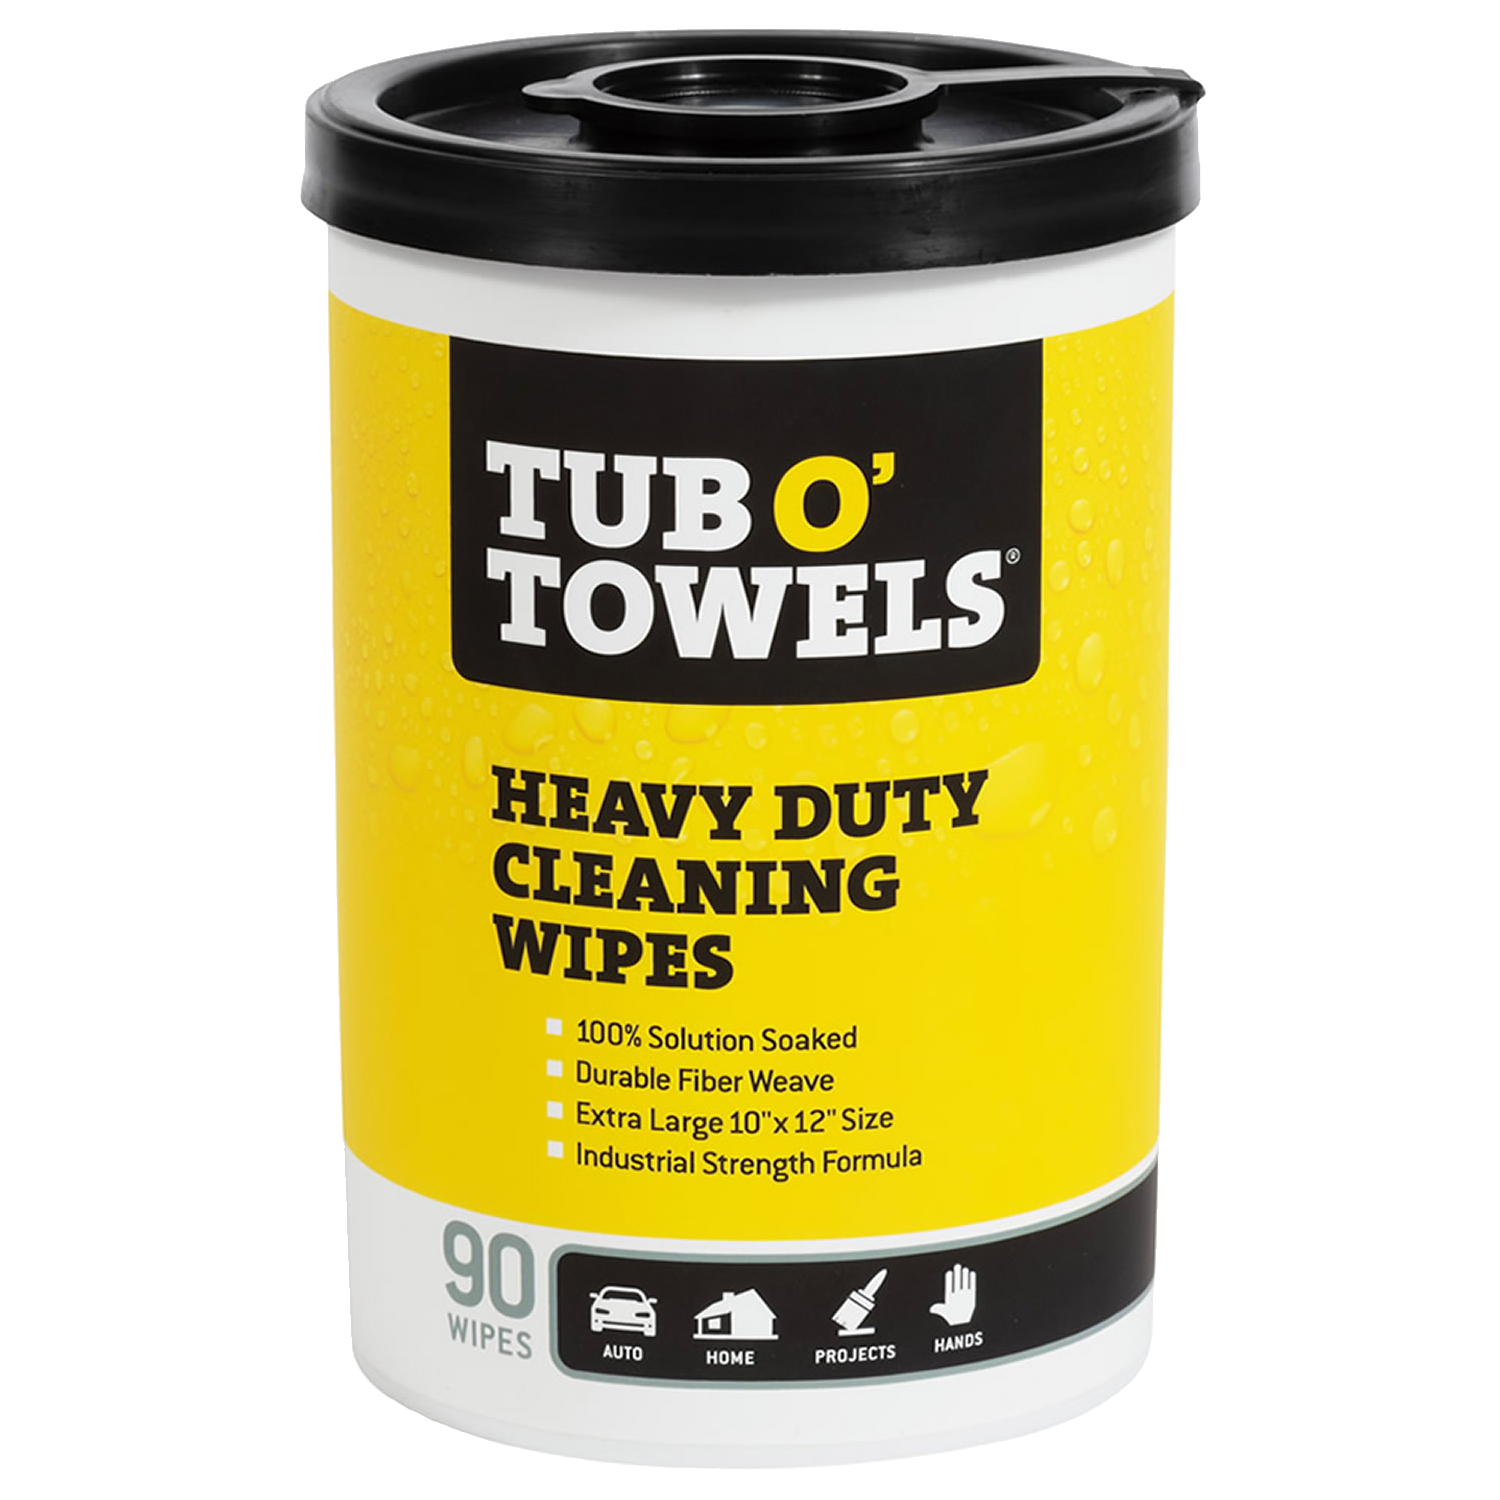 Tub O' Towels Heavy Duty Cleaning Wipes - 90 Count